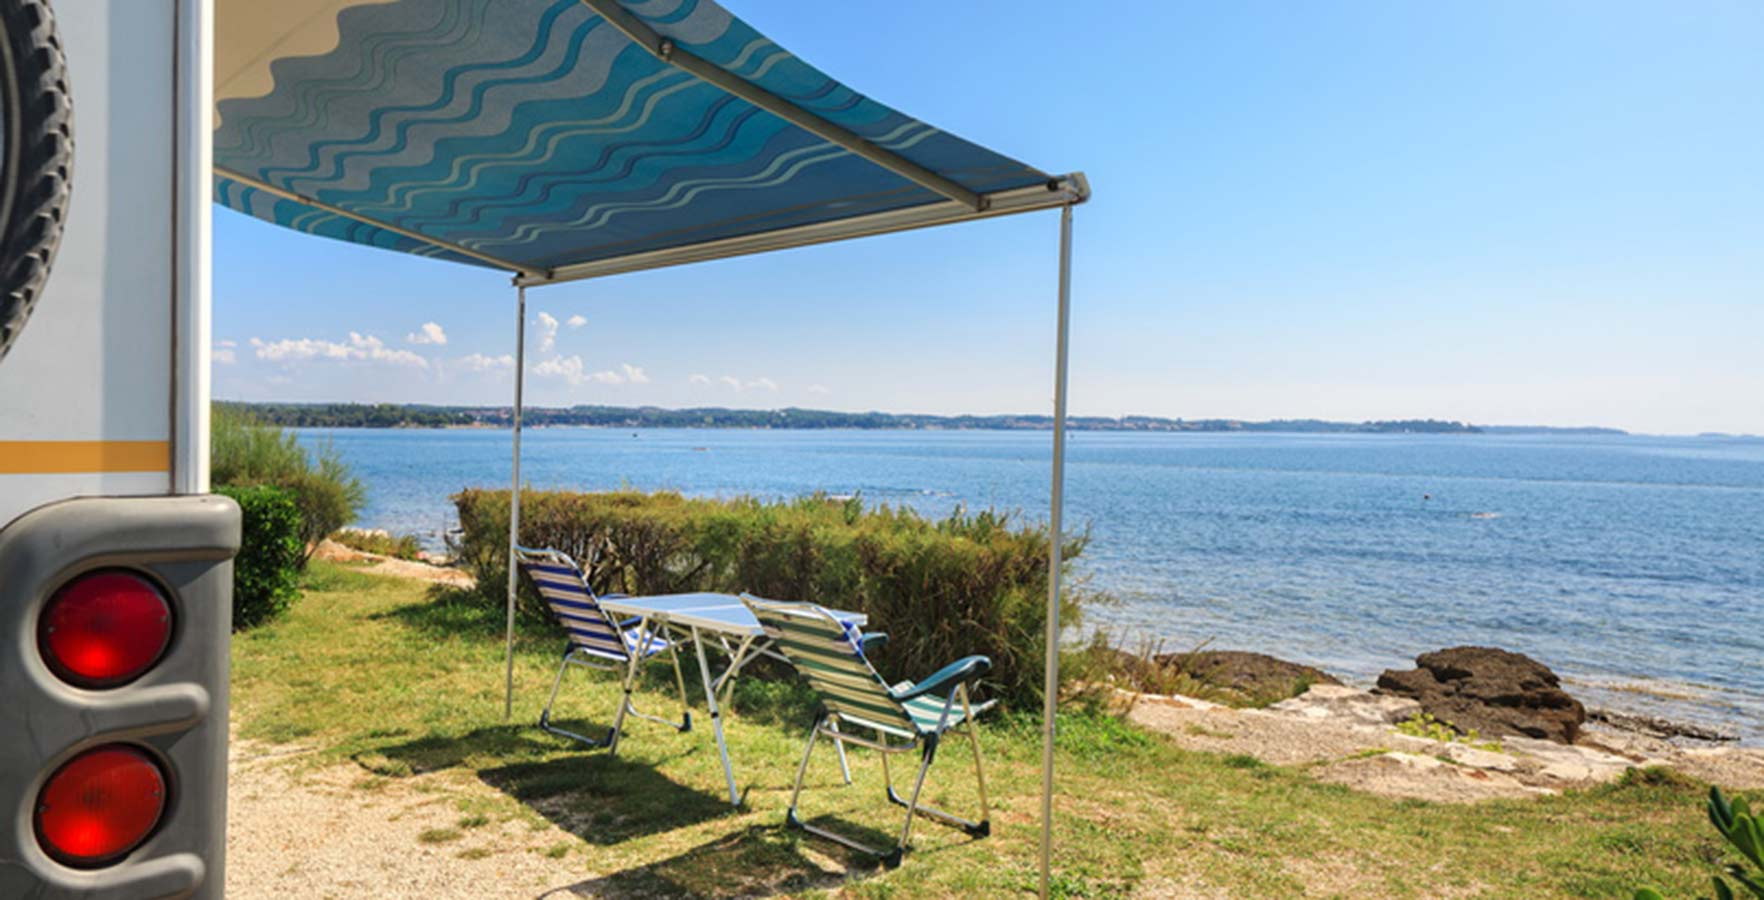 Campsite Ulika - accommodation in Croatia